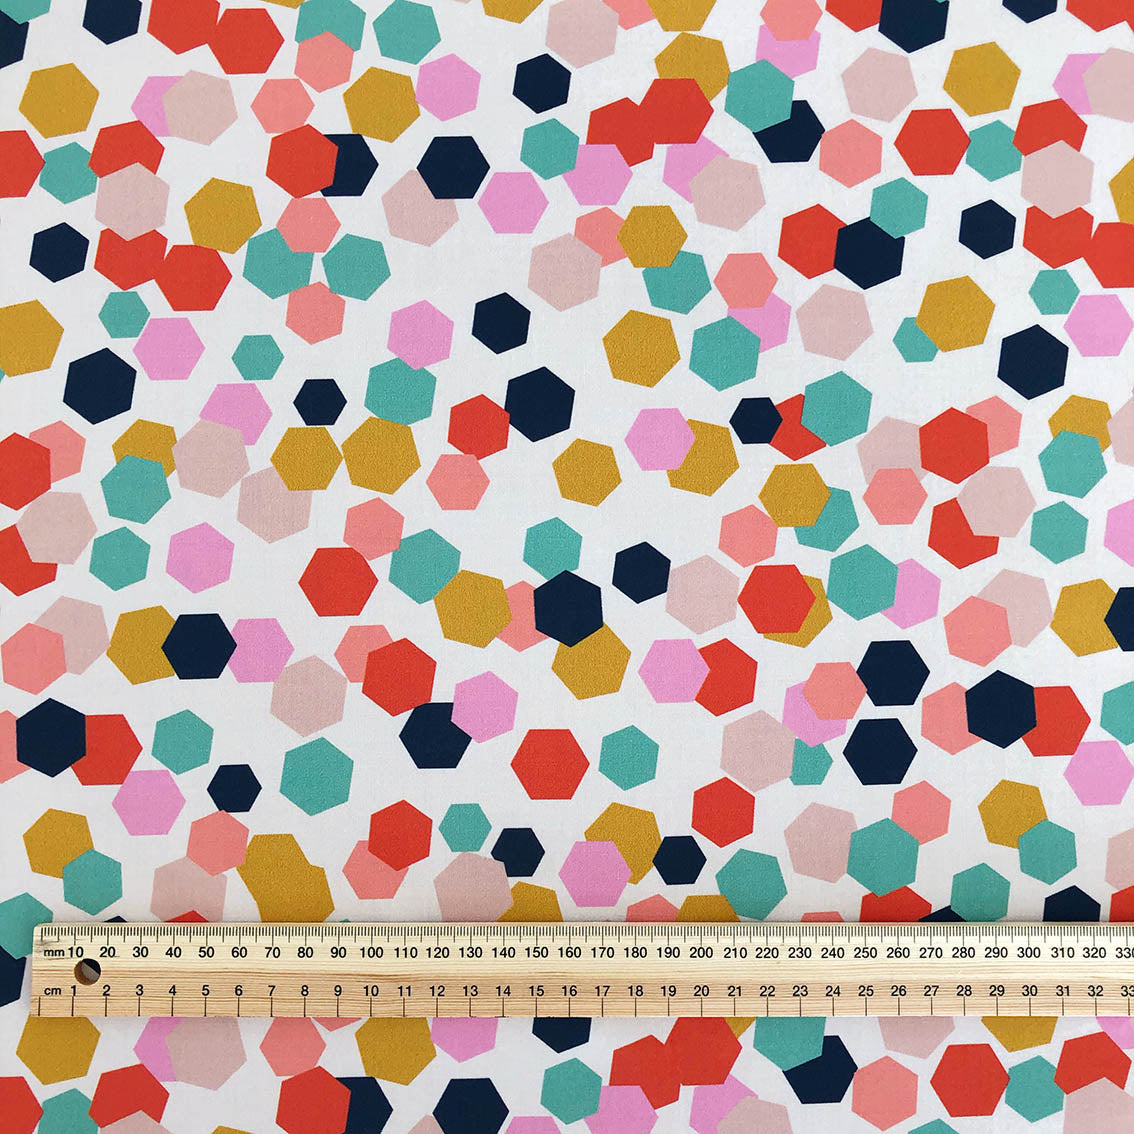 Hexagon Confetti - Cotton Sateen fabric by the half metre